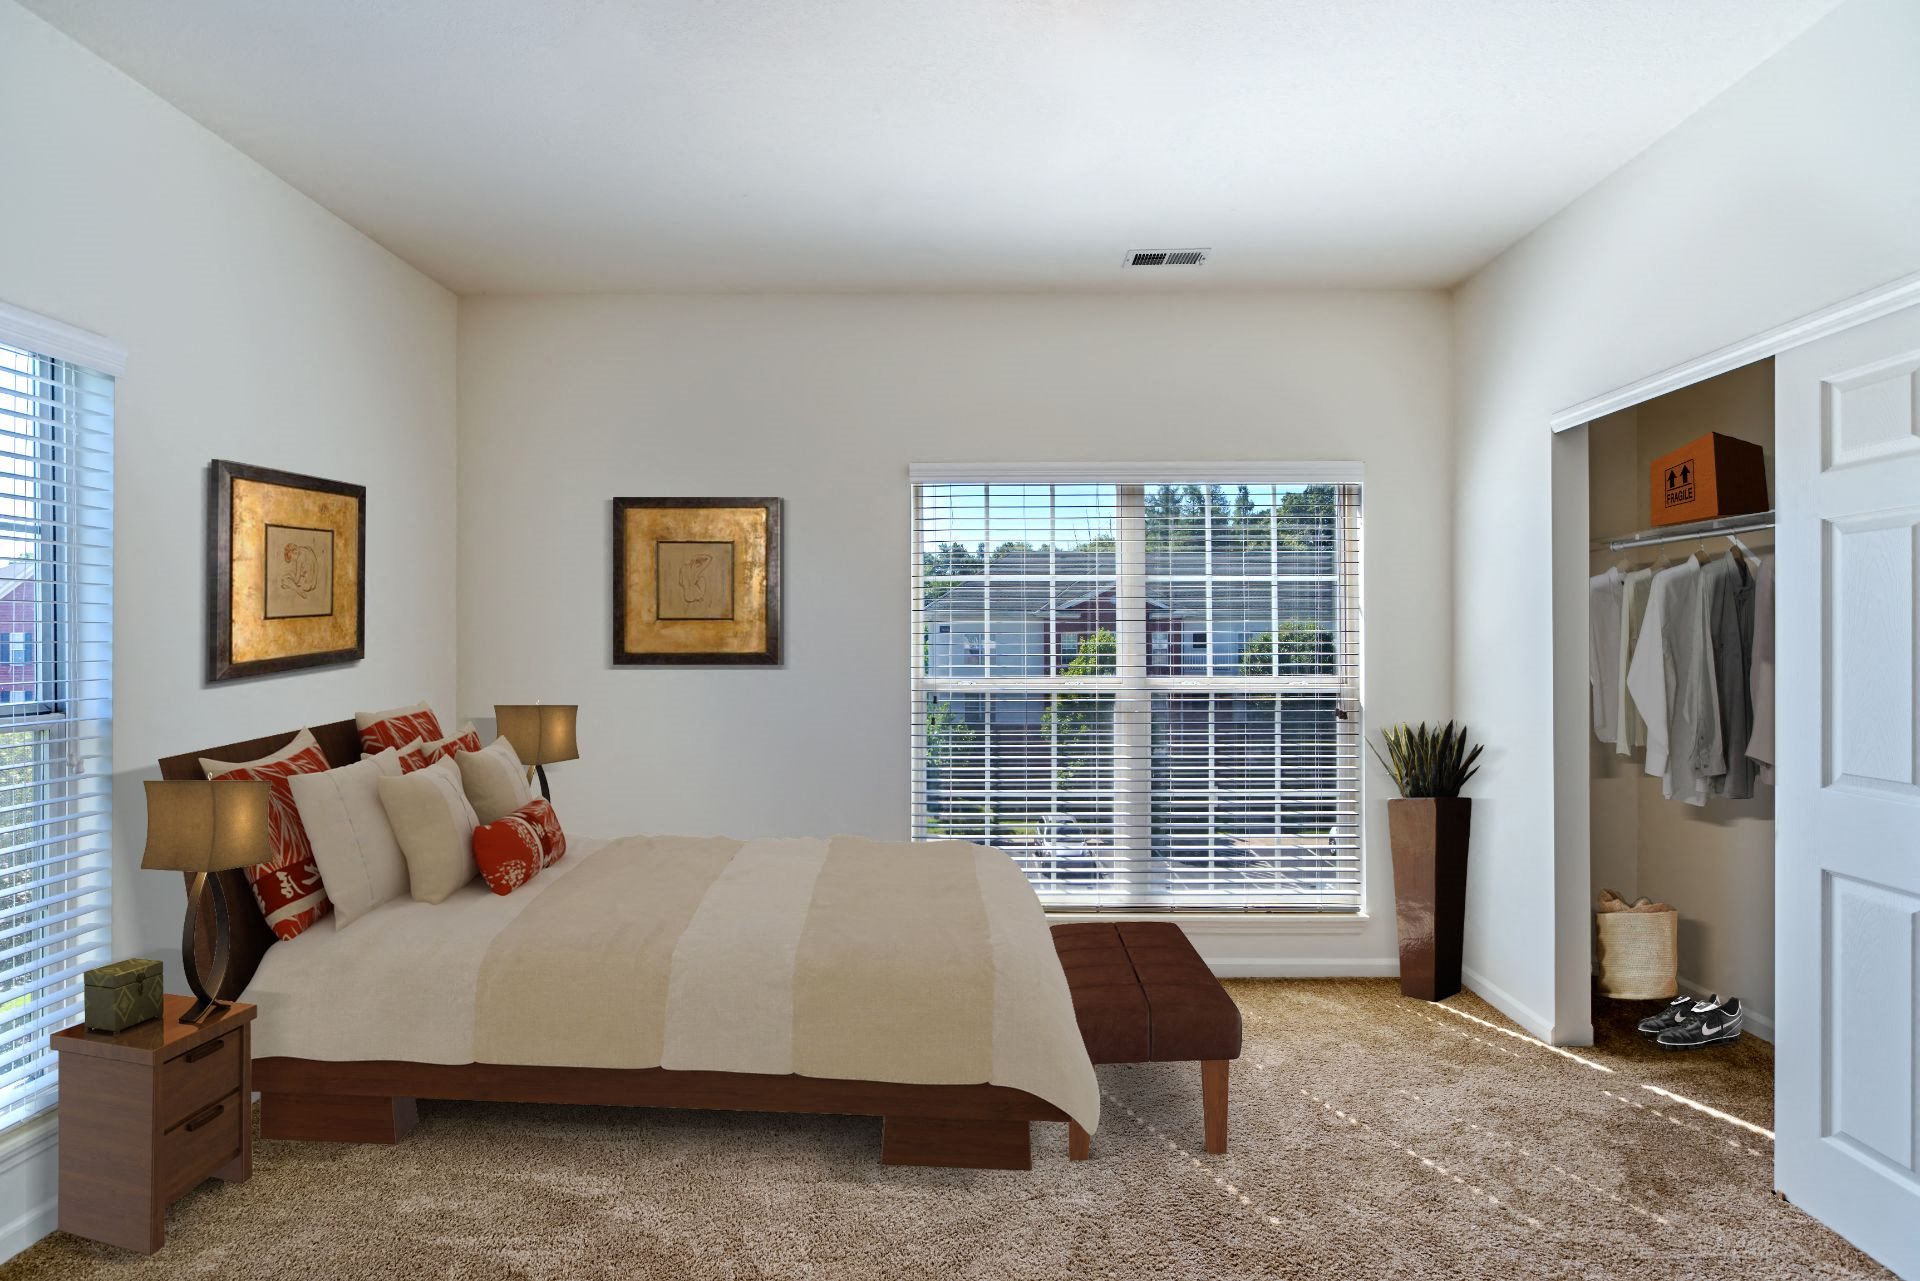 Christopher Wren Apartments, 501 Christopher Wren Drive, Wexford, PA 15090 Large Apartments with Spacious Closets